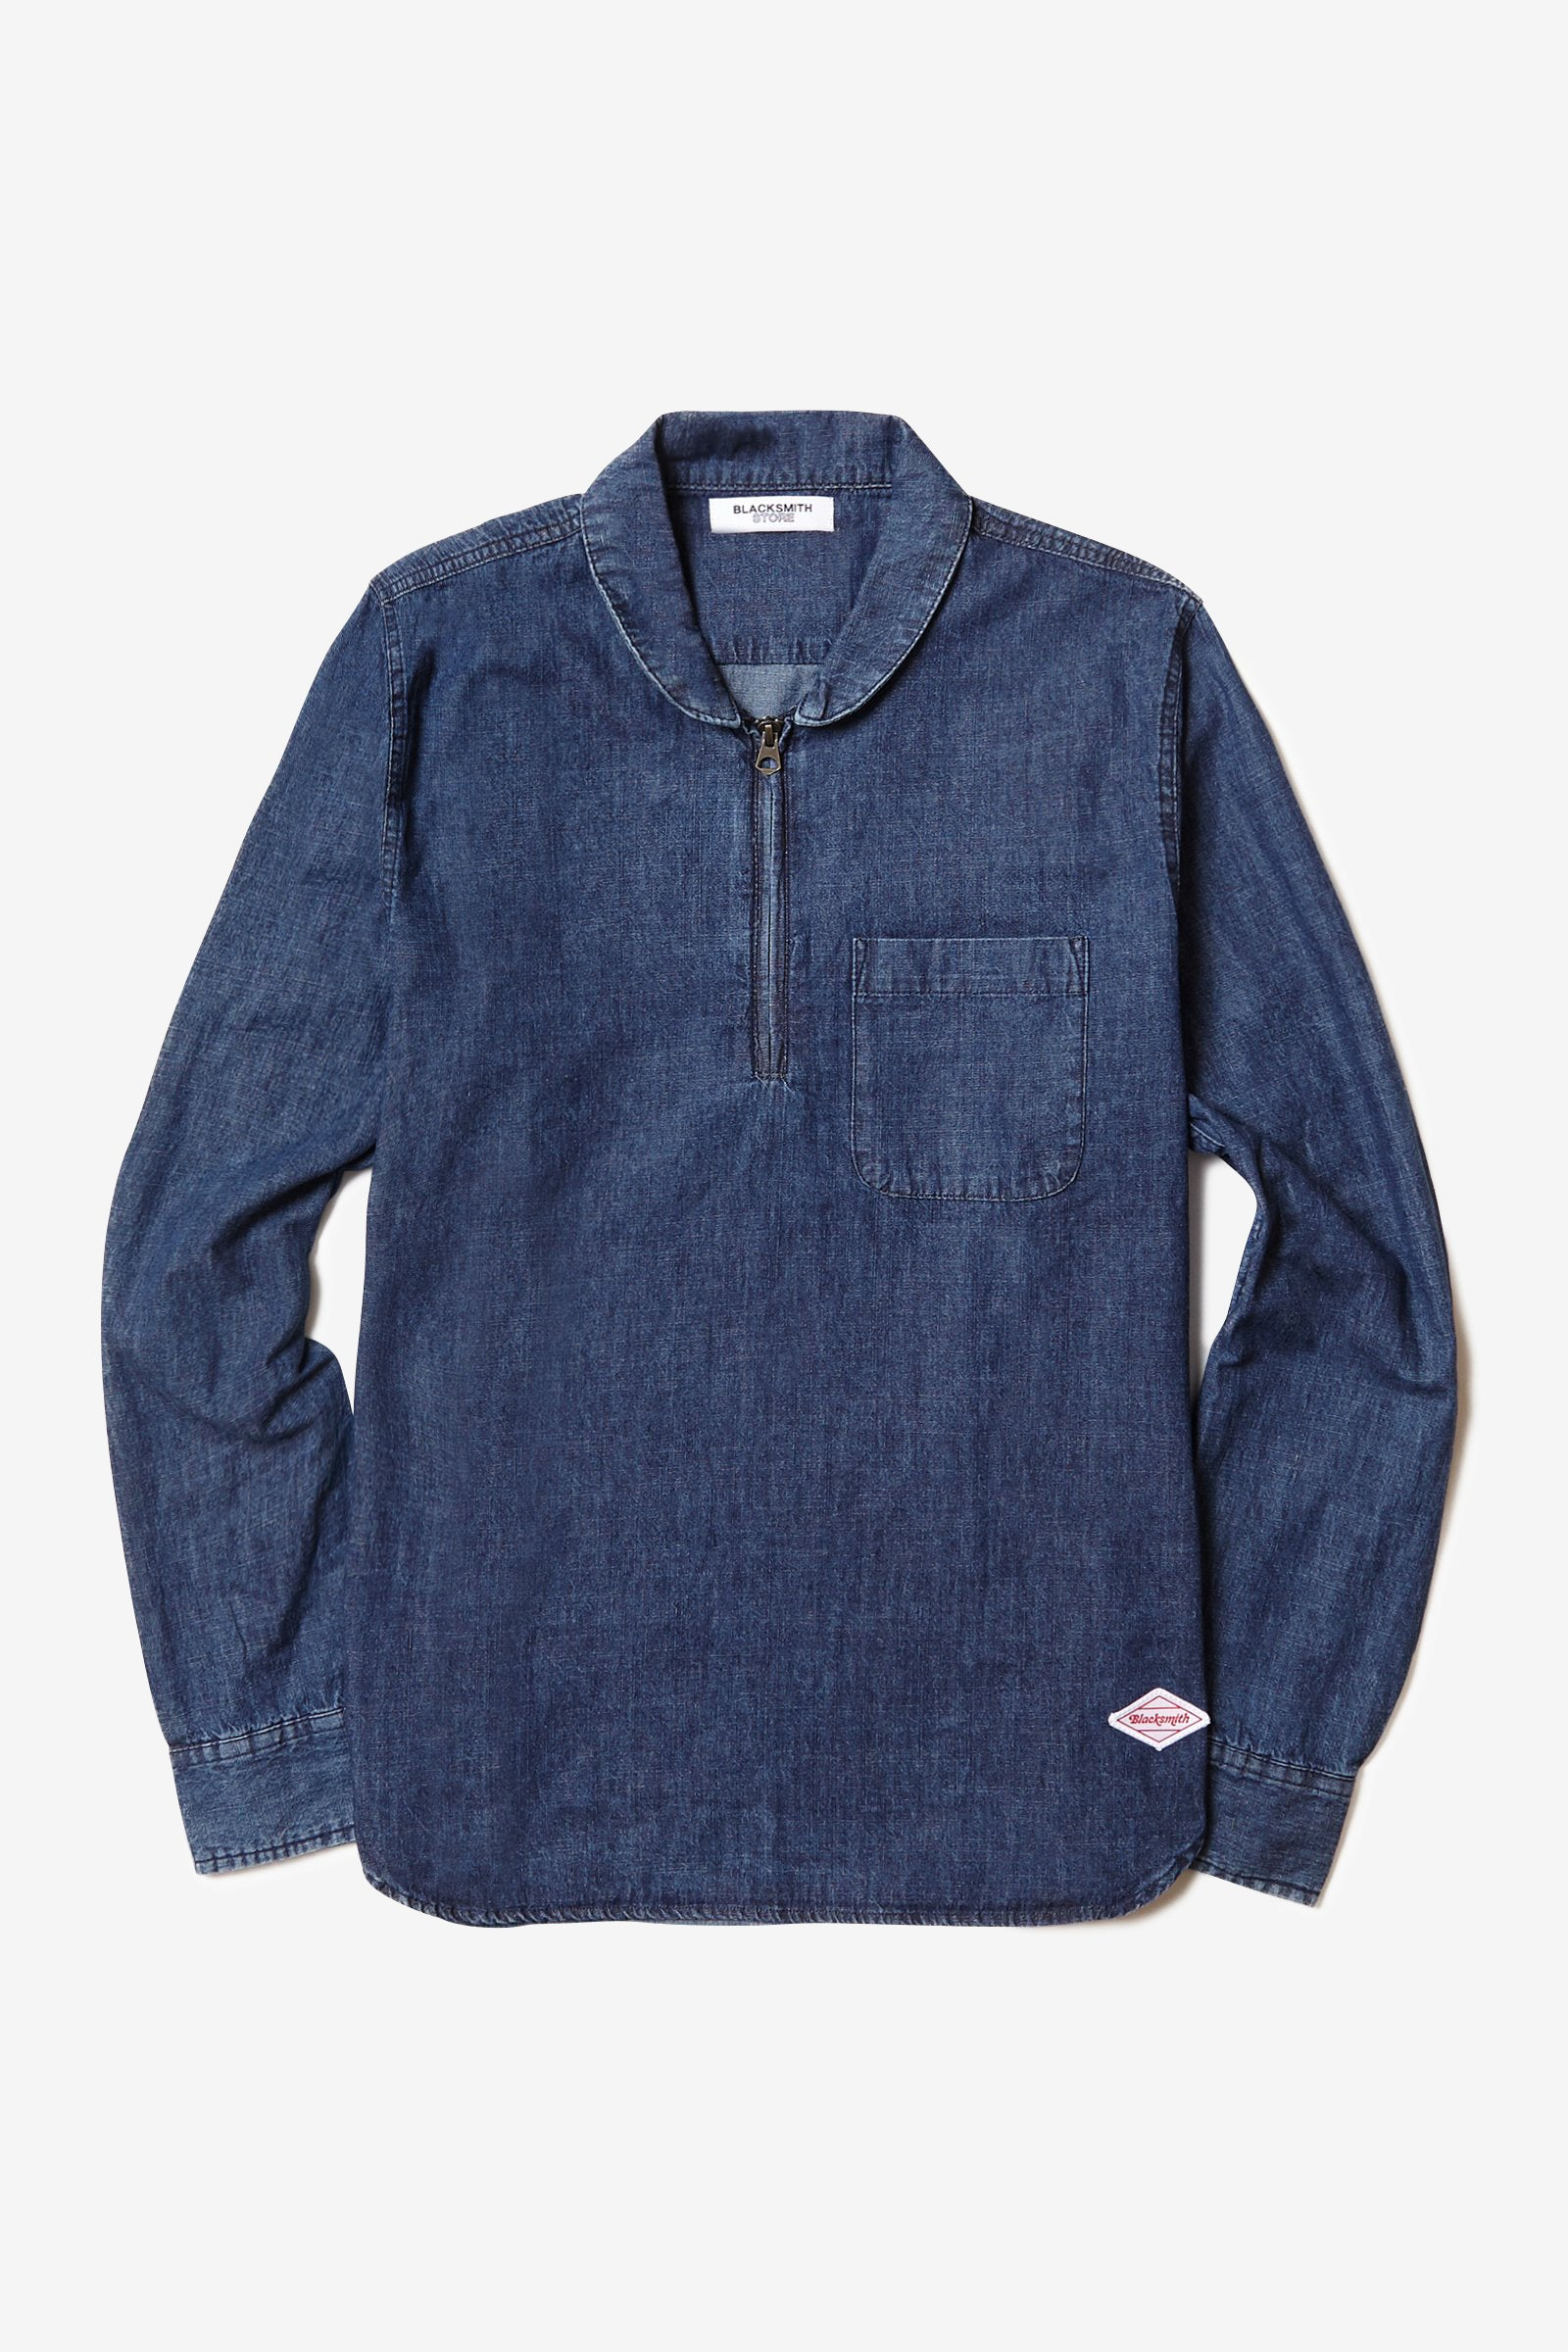 Blacksmith - Quarter Zip Shawl Shirt - Indigo